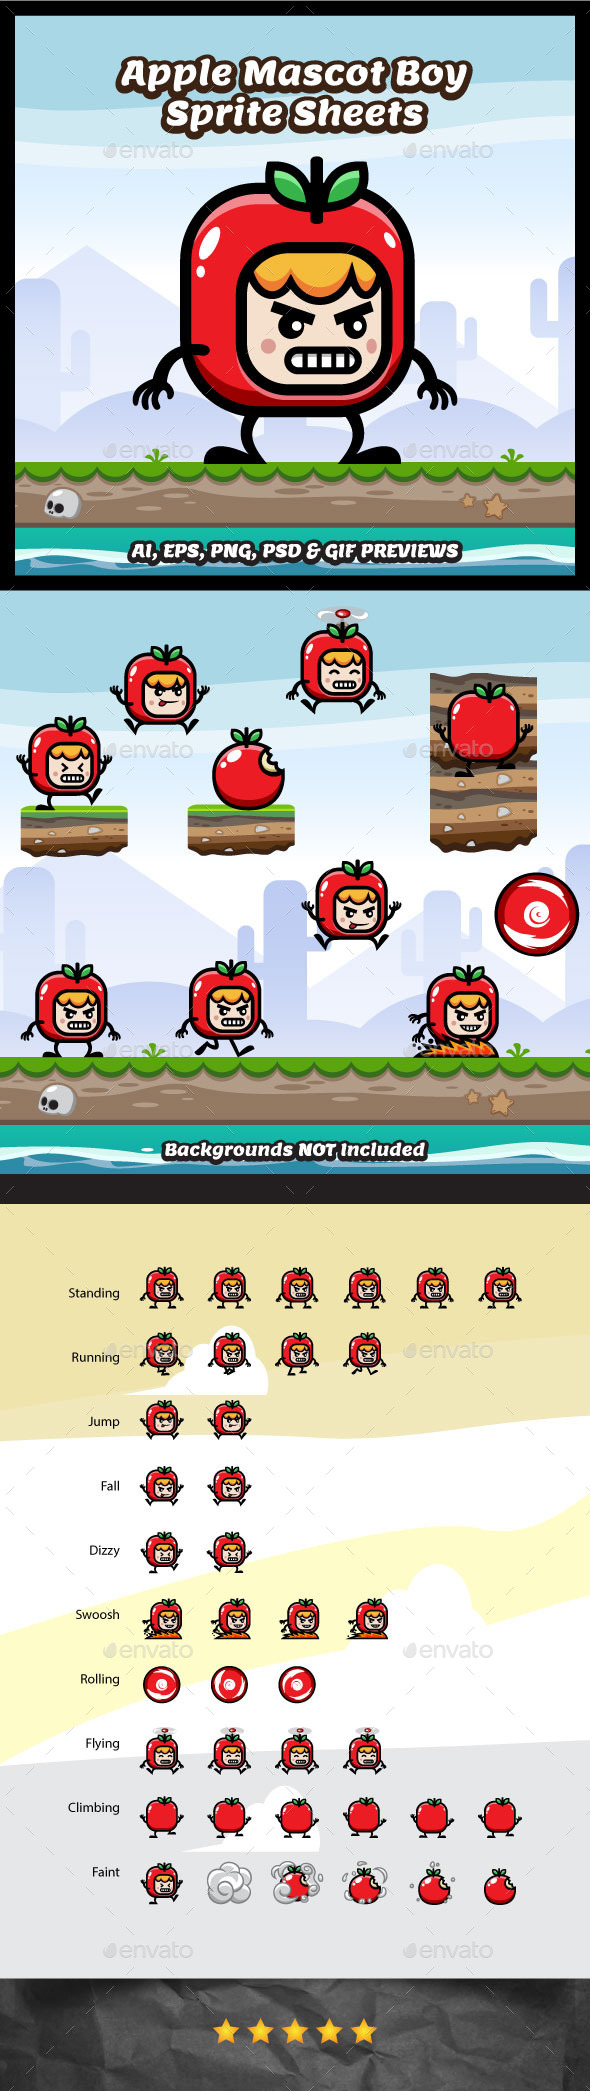 Red Apple Mascot Boy Game Character - Sprites Game Assets